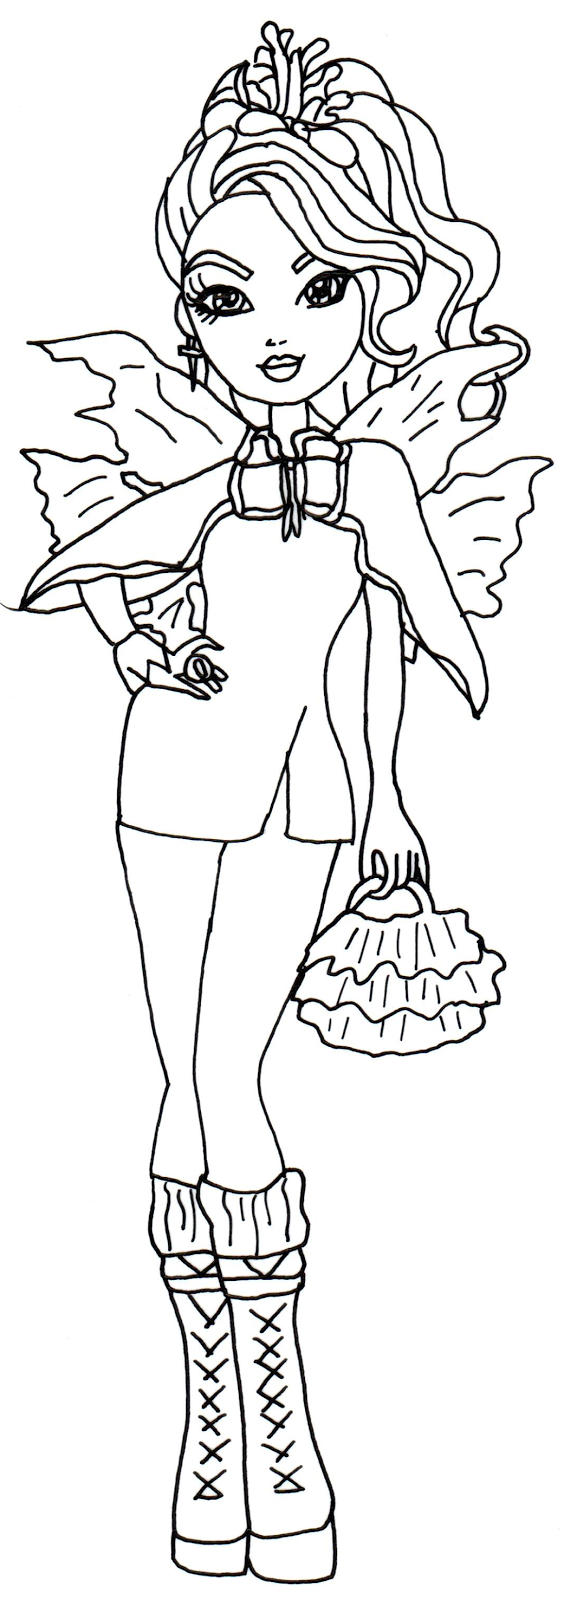 HD wallpapers ever after high rosabella beauty coloring pages